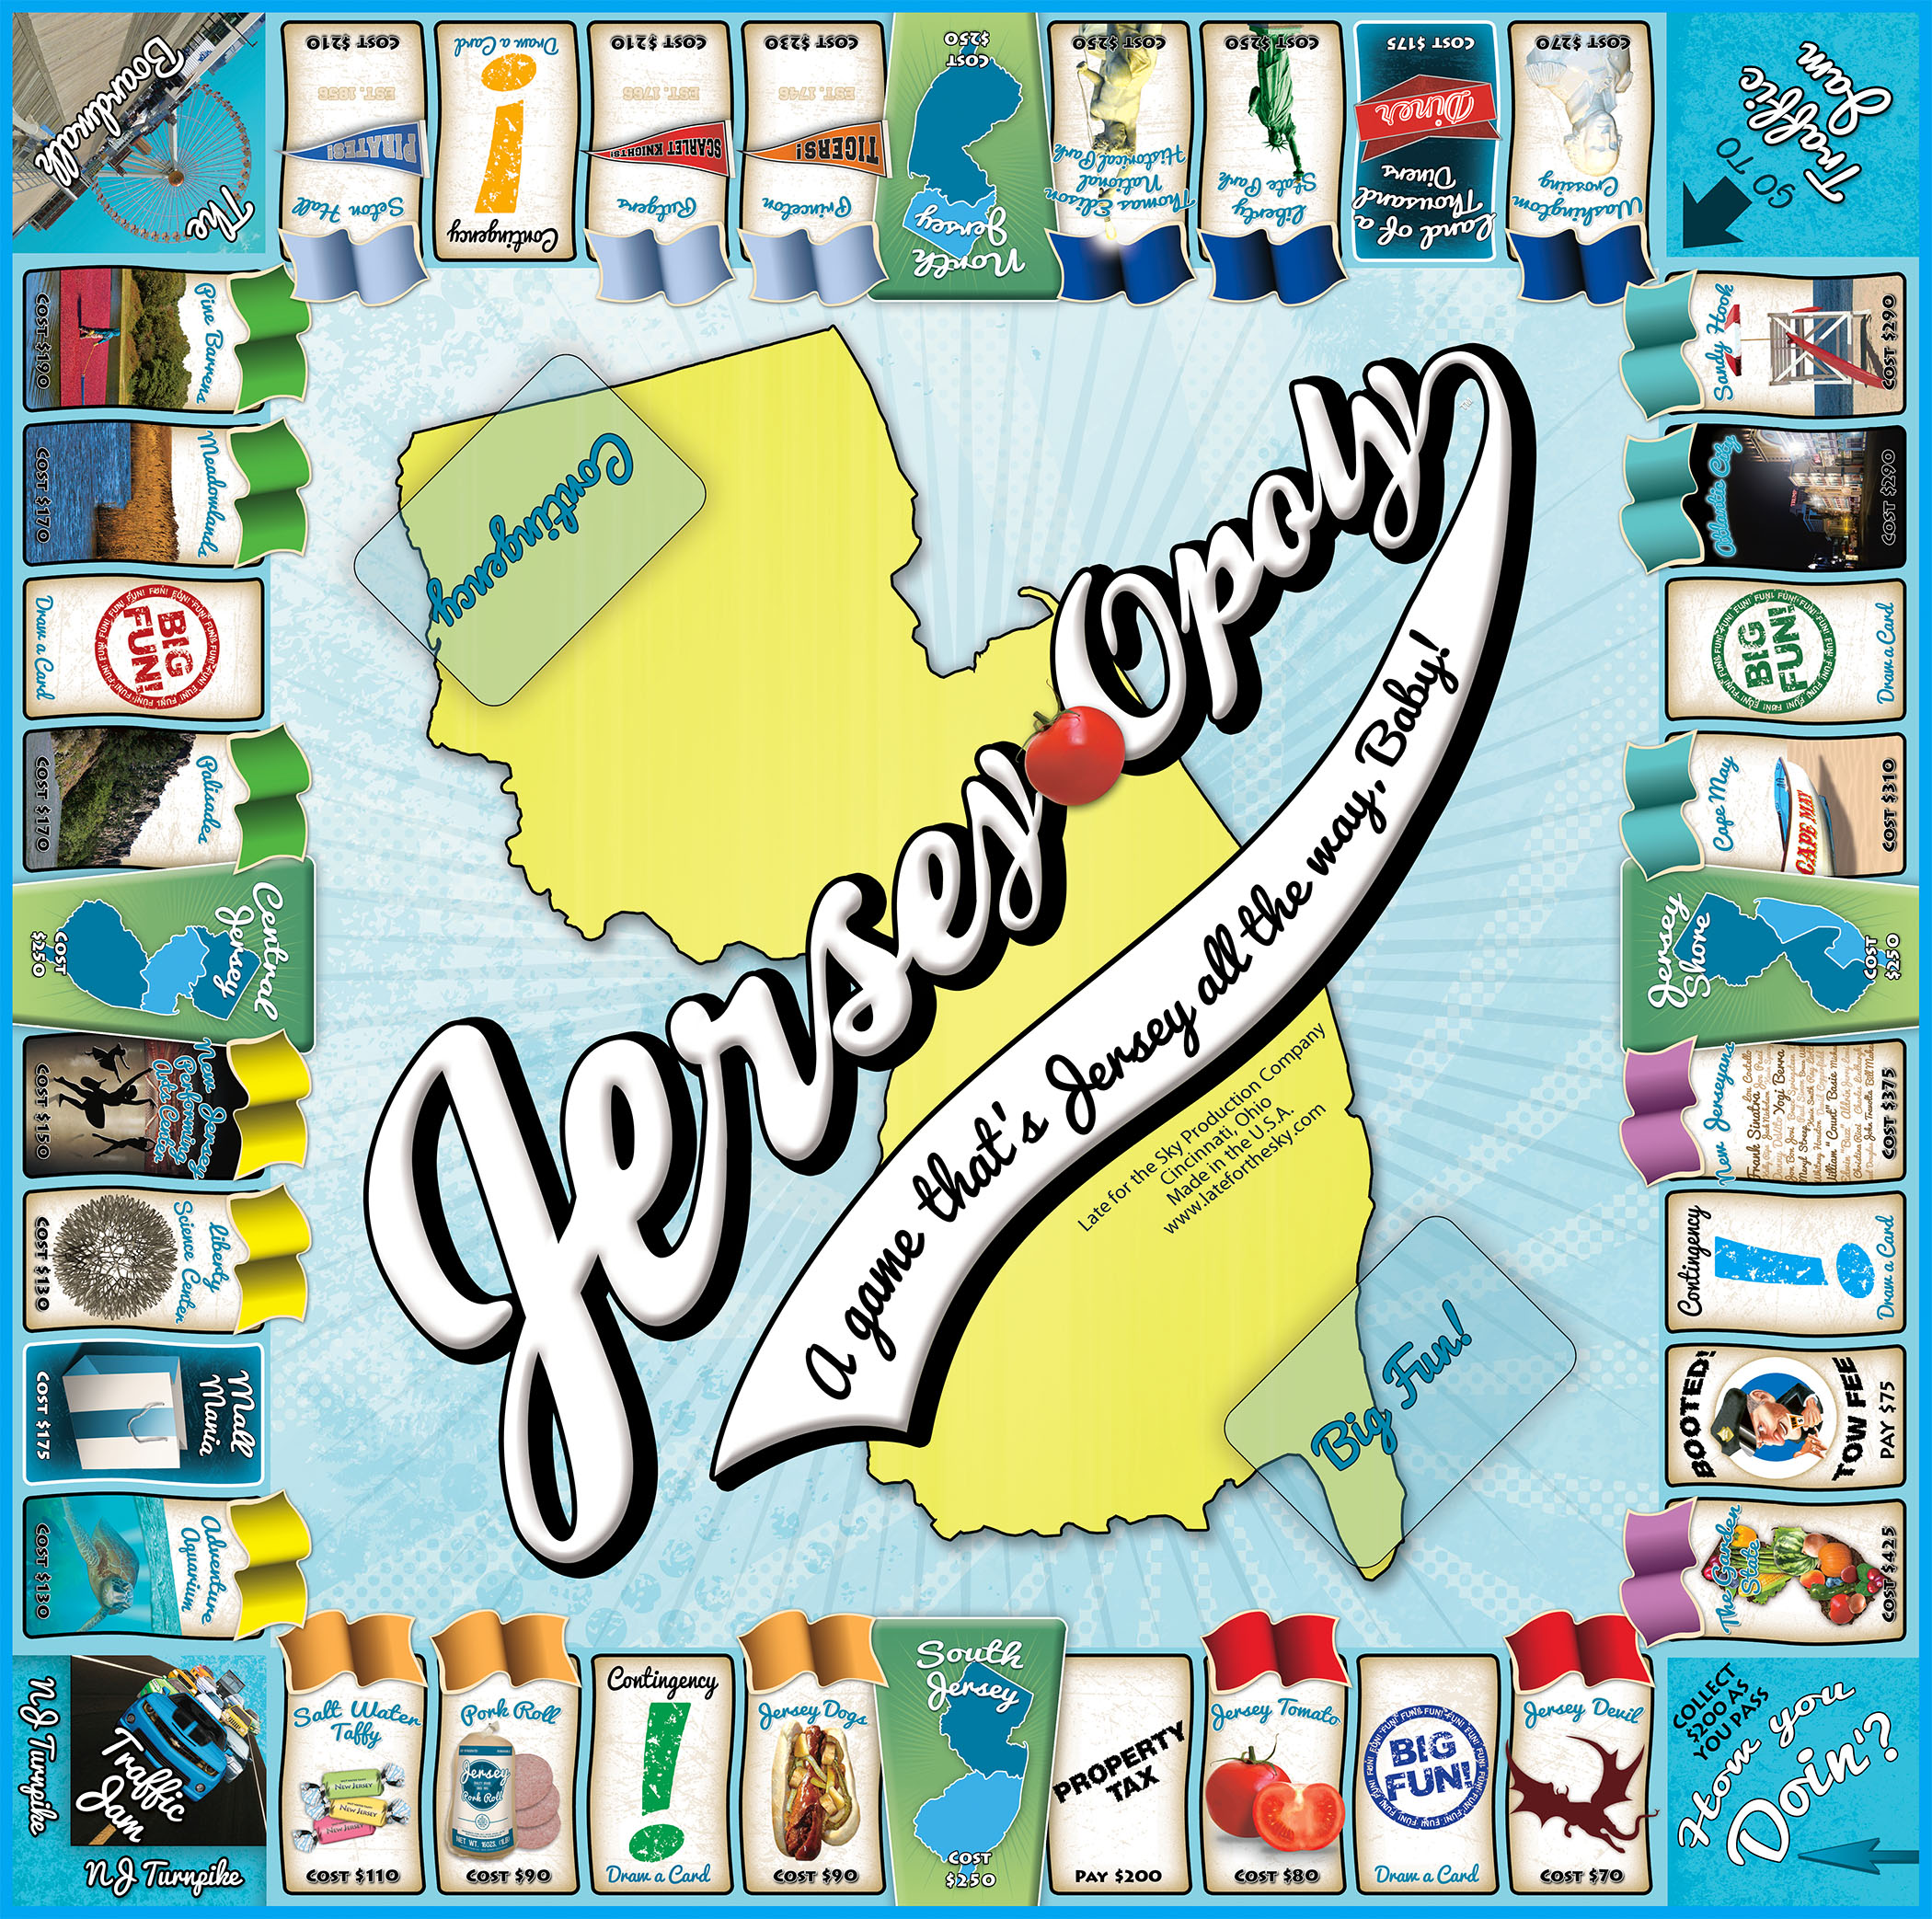 JERSEY-OPOLY Board Game